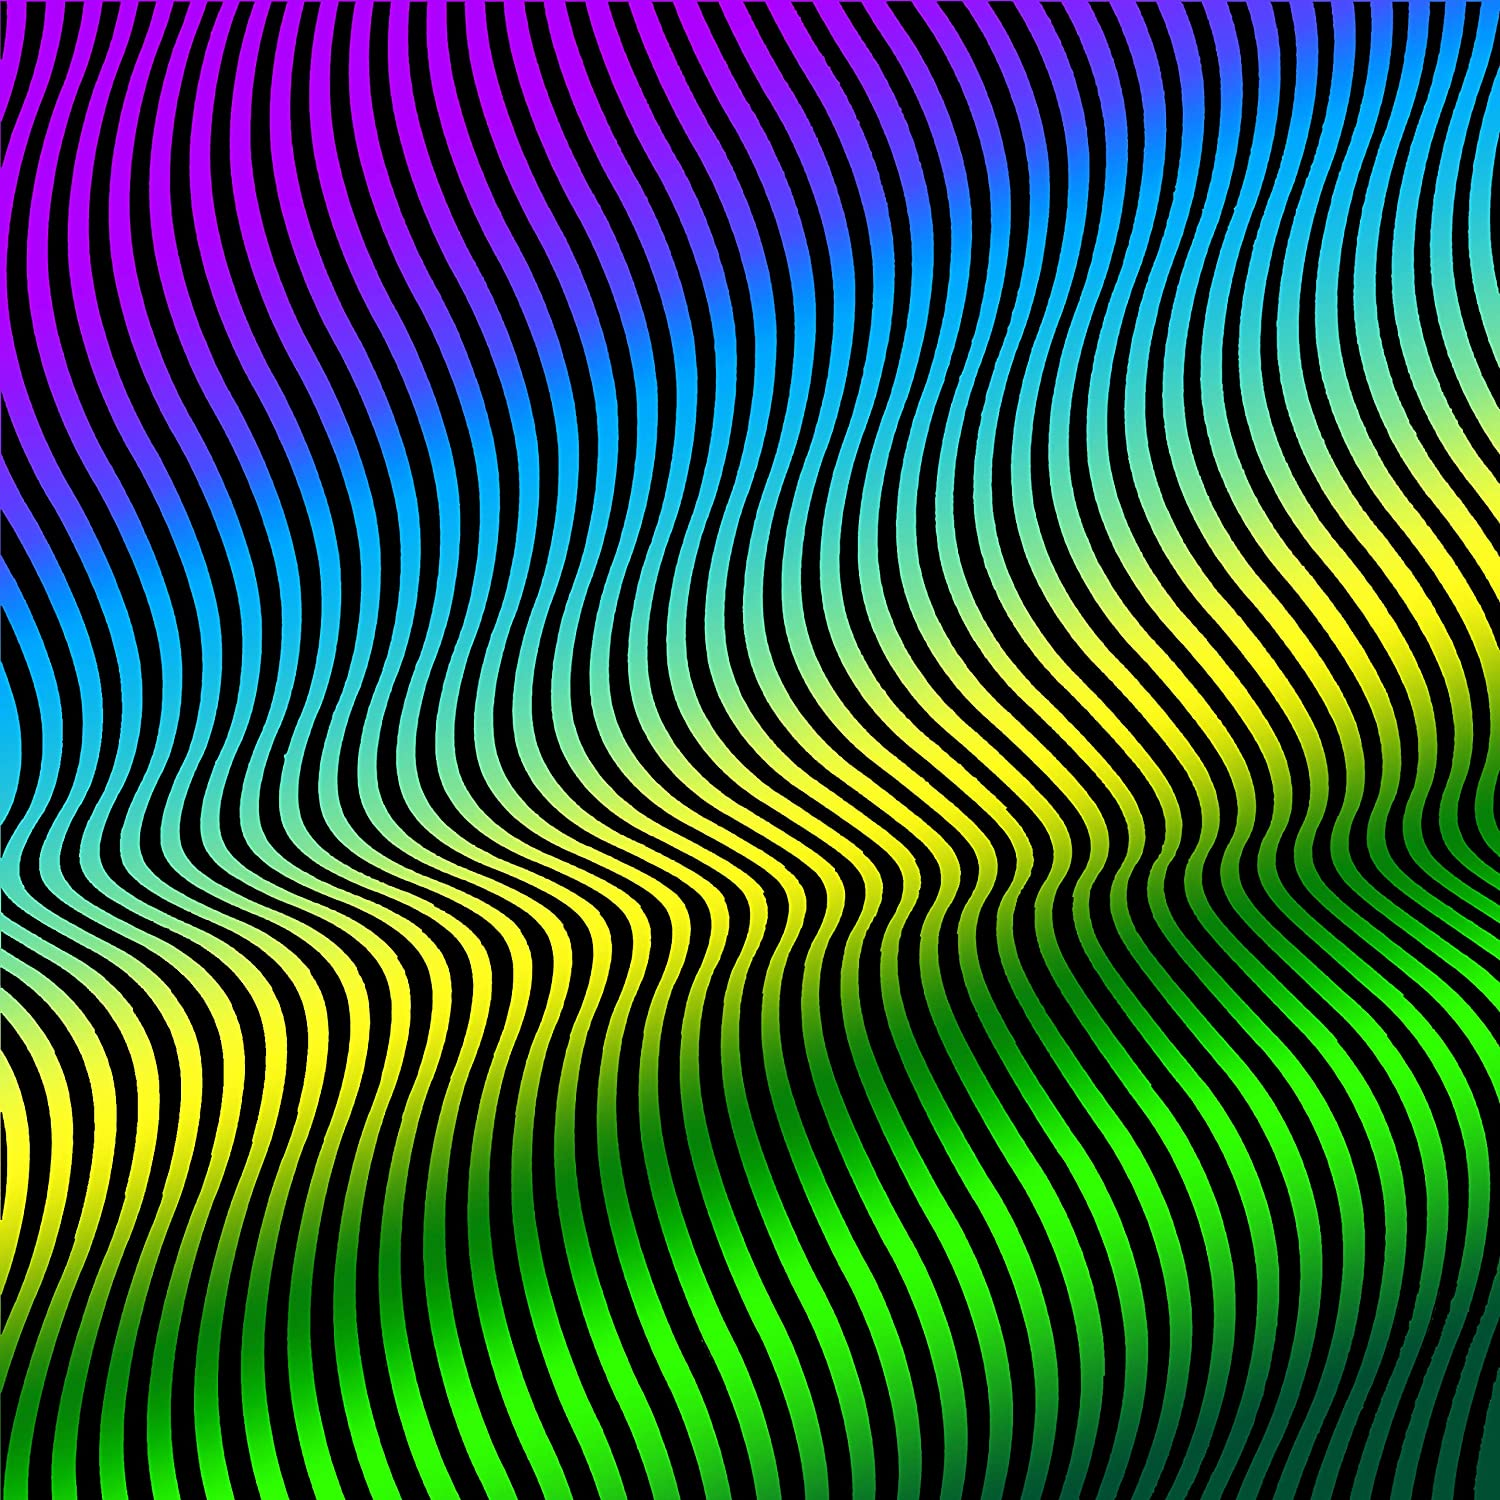 Optical Illusion :: Trippy Art :: Waves, Psychedelic Colors. Laminated Art Print